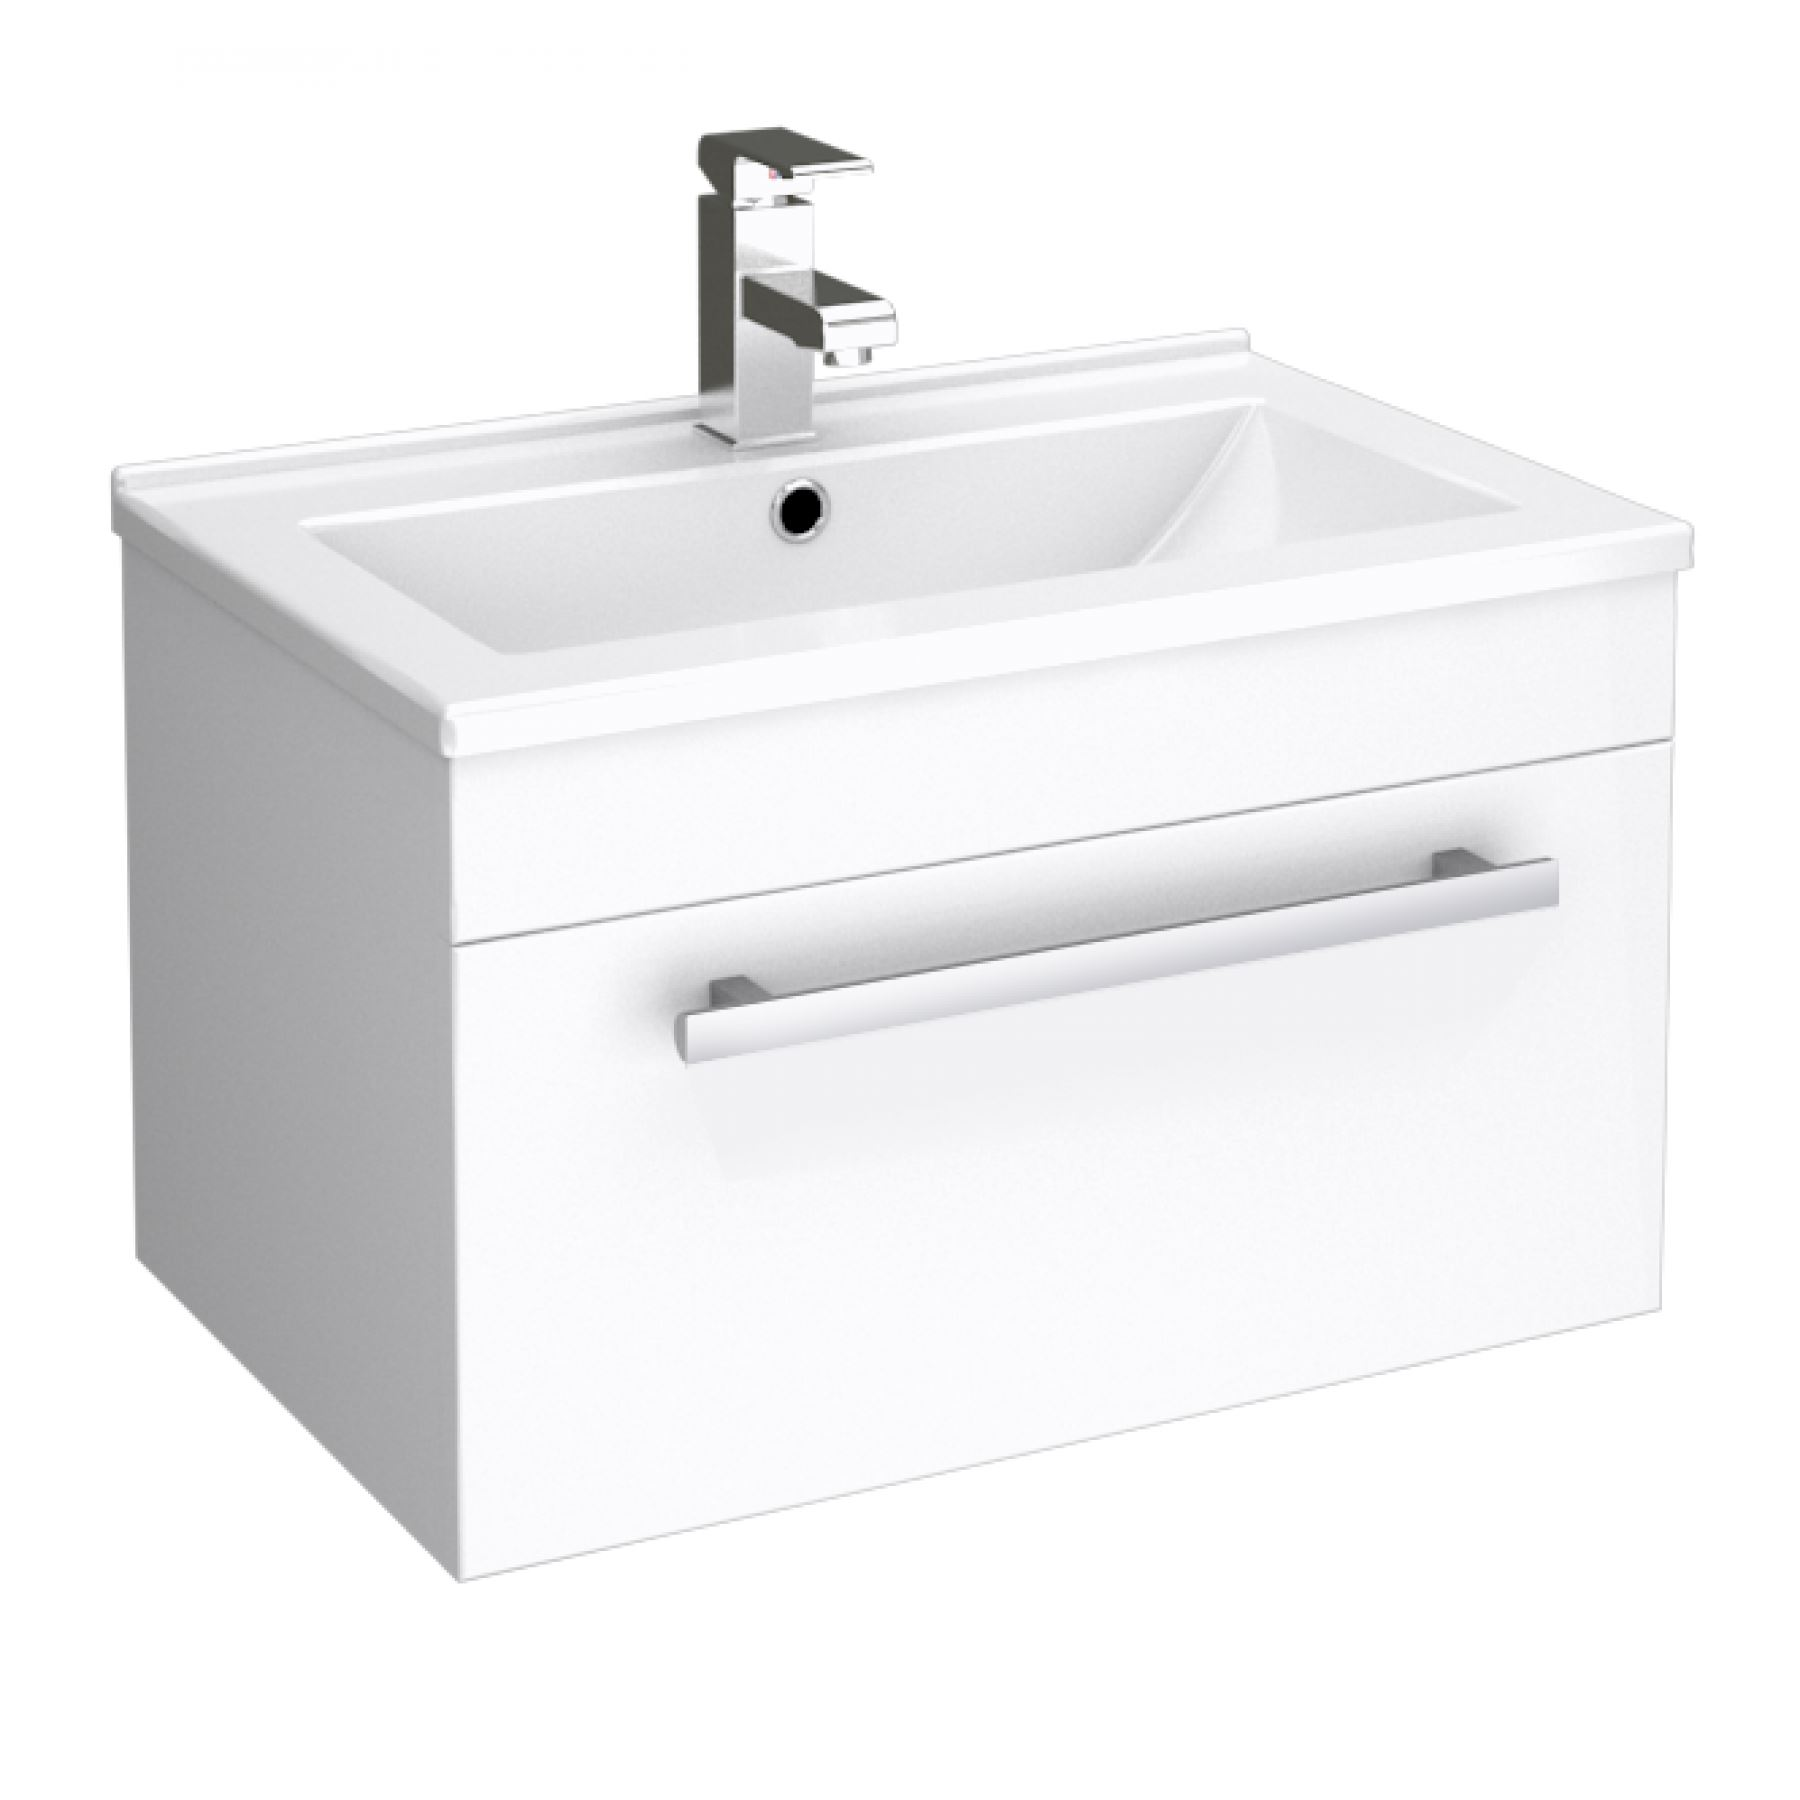 Bathroom Storage Wall Hung Vanity Unit Cloakroom Cabinet Dropdown Sink Basin 003 Ebay